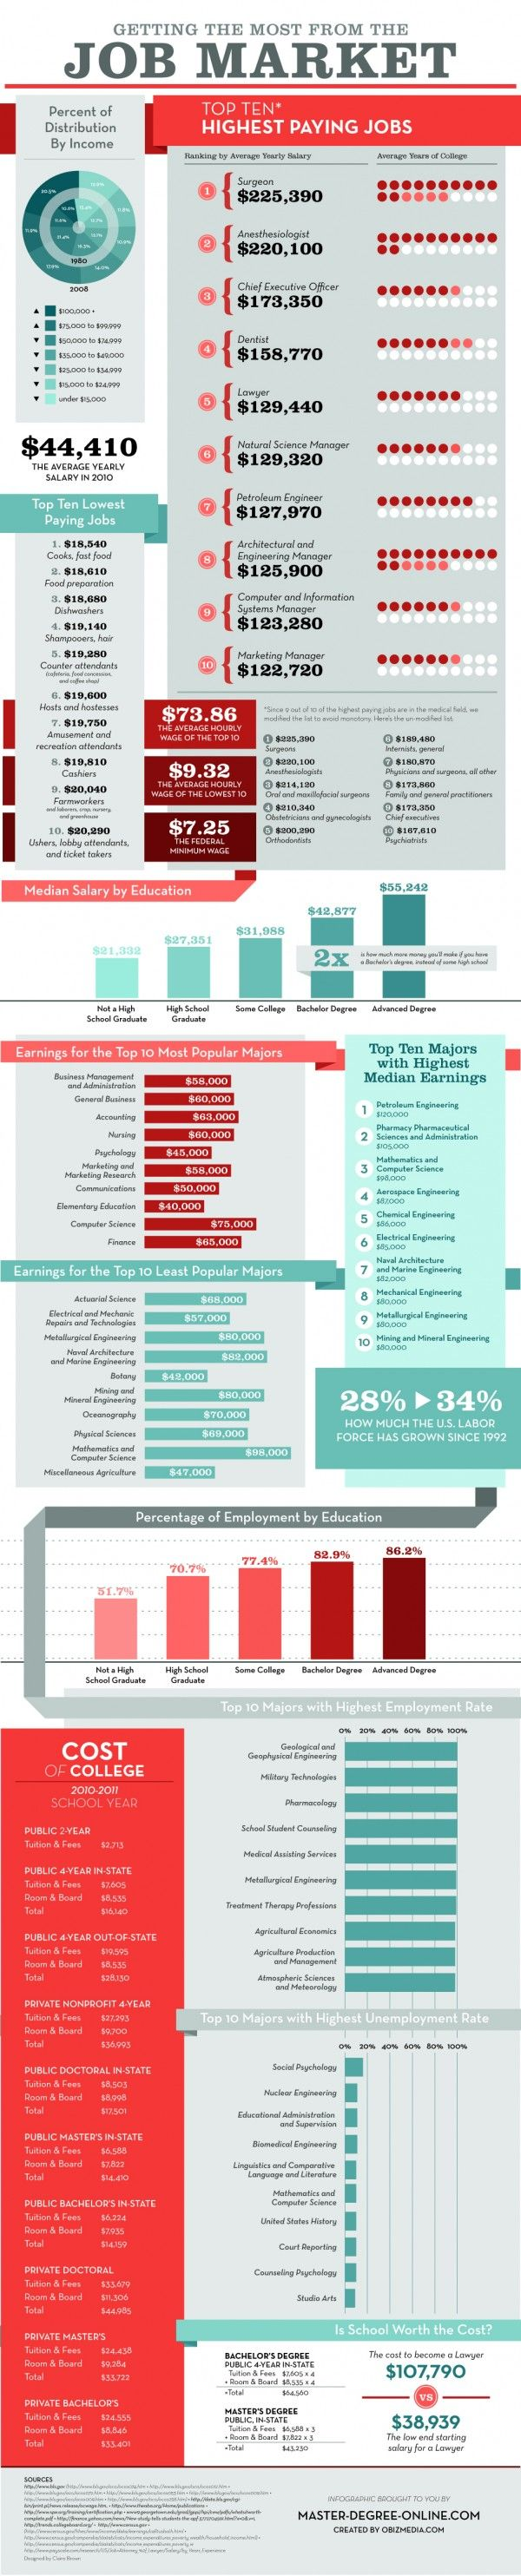 Getting The Most From The Job Market Infographic   Infographics Showcase